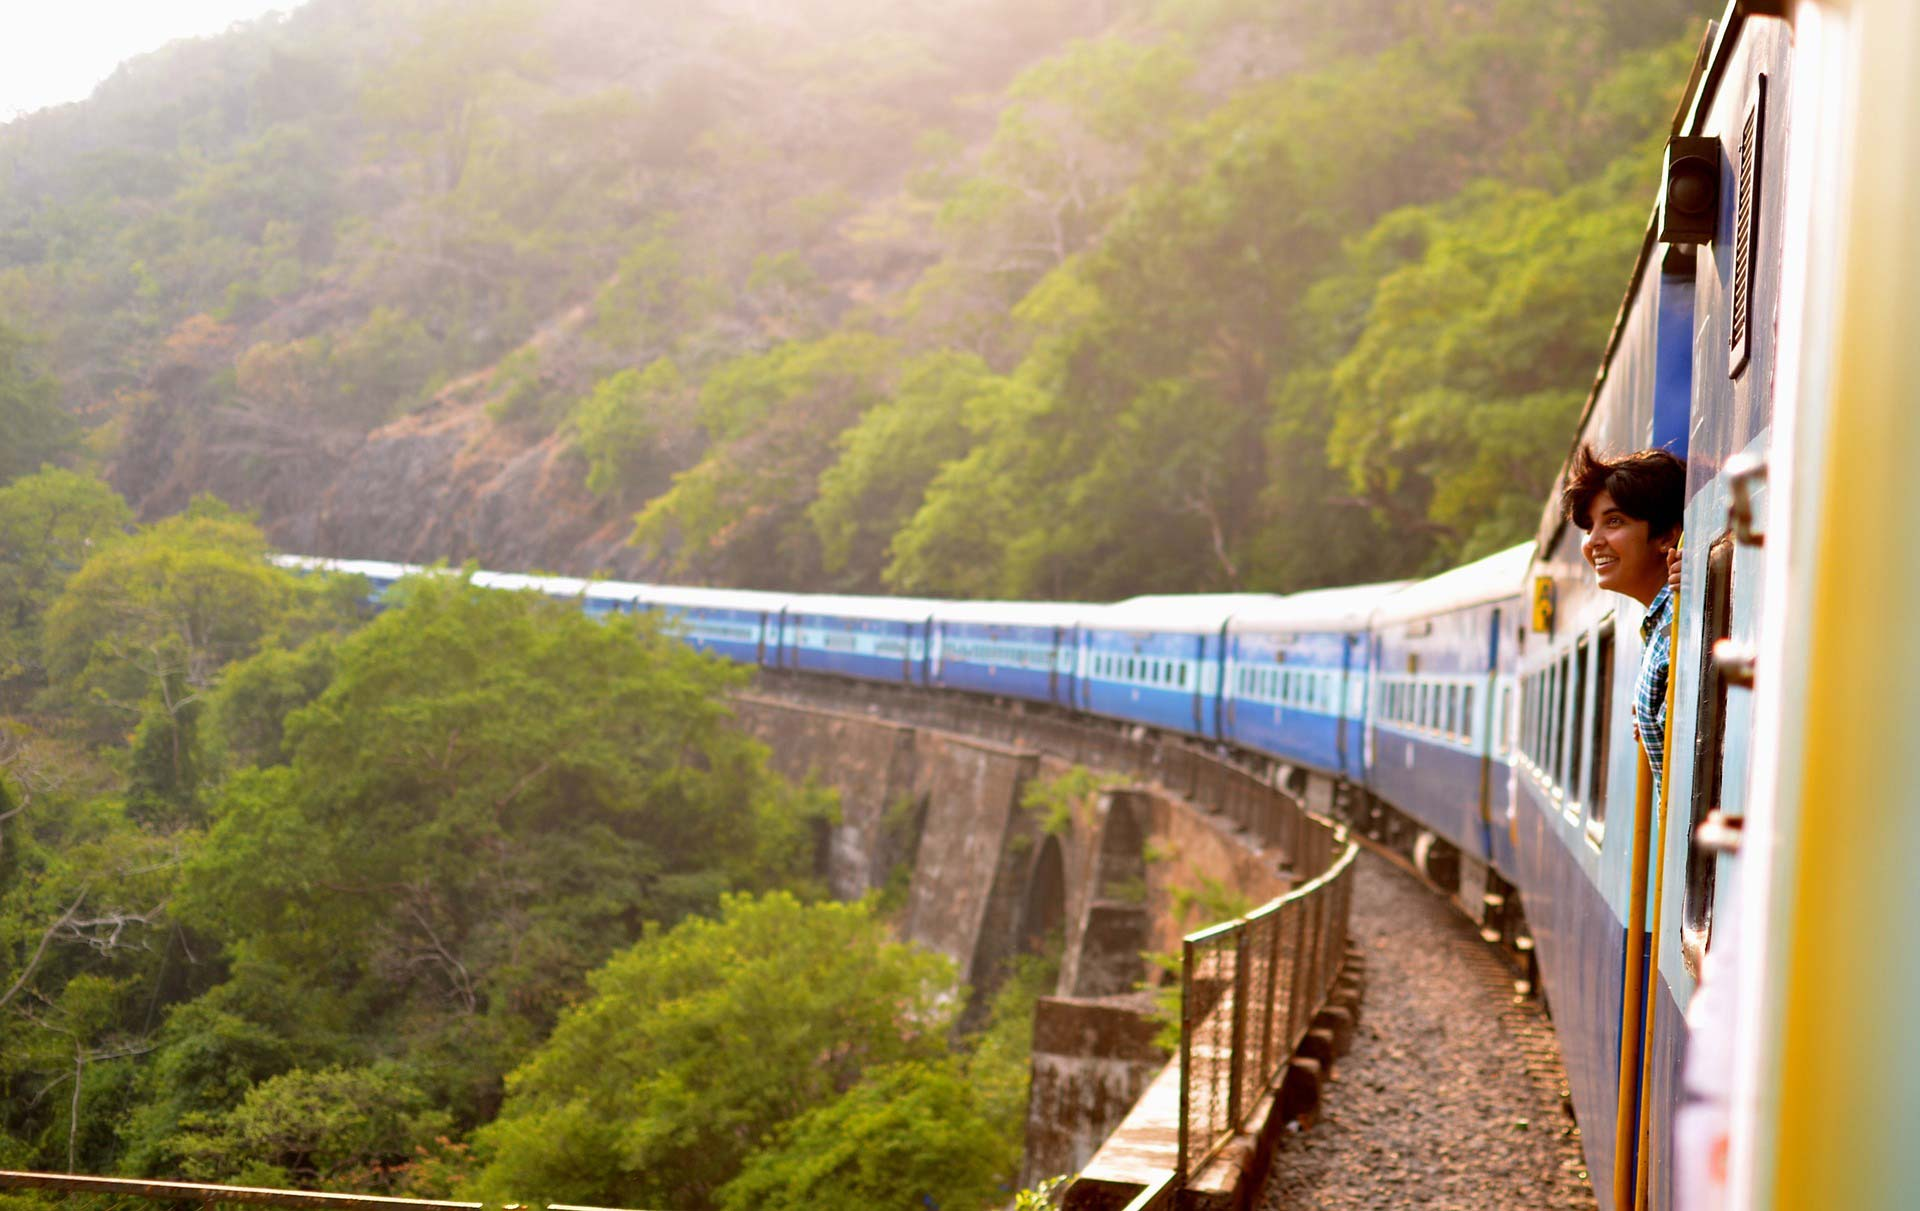 List of useful train apps in India